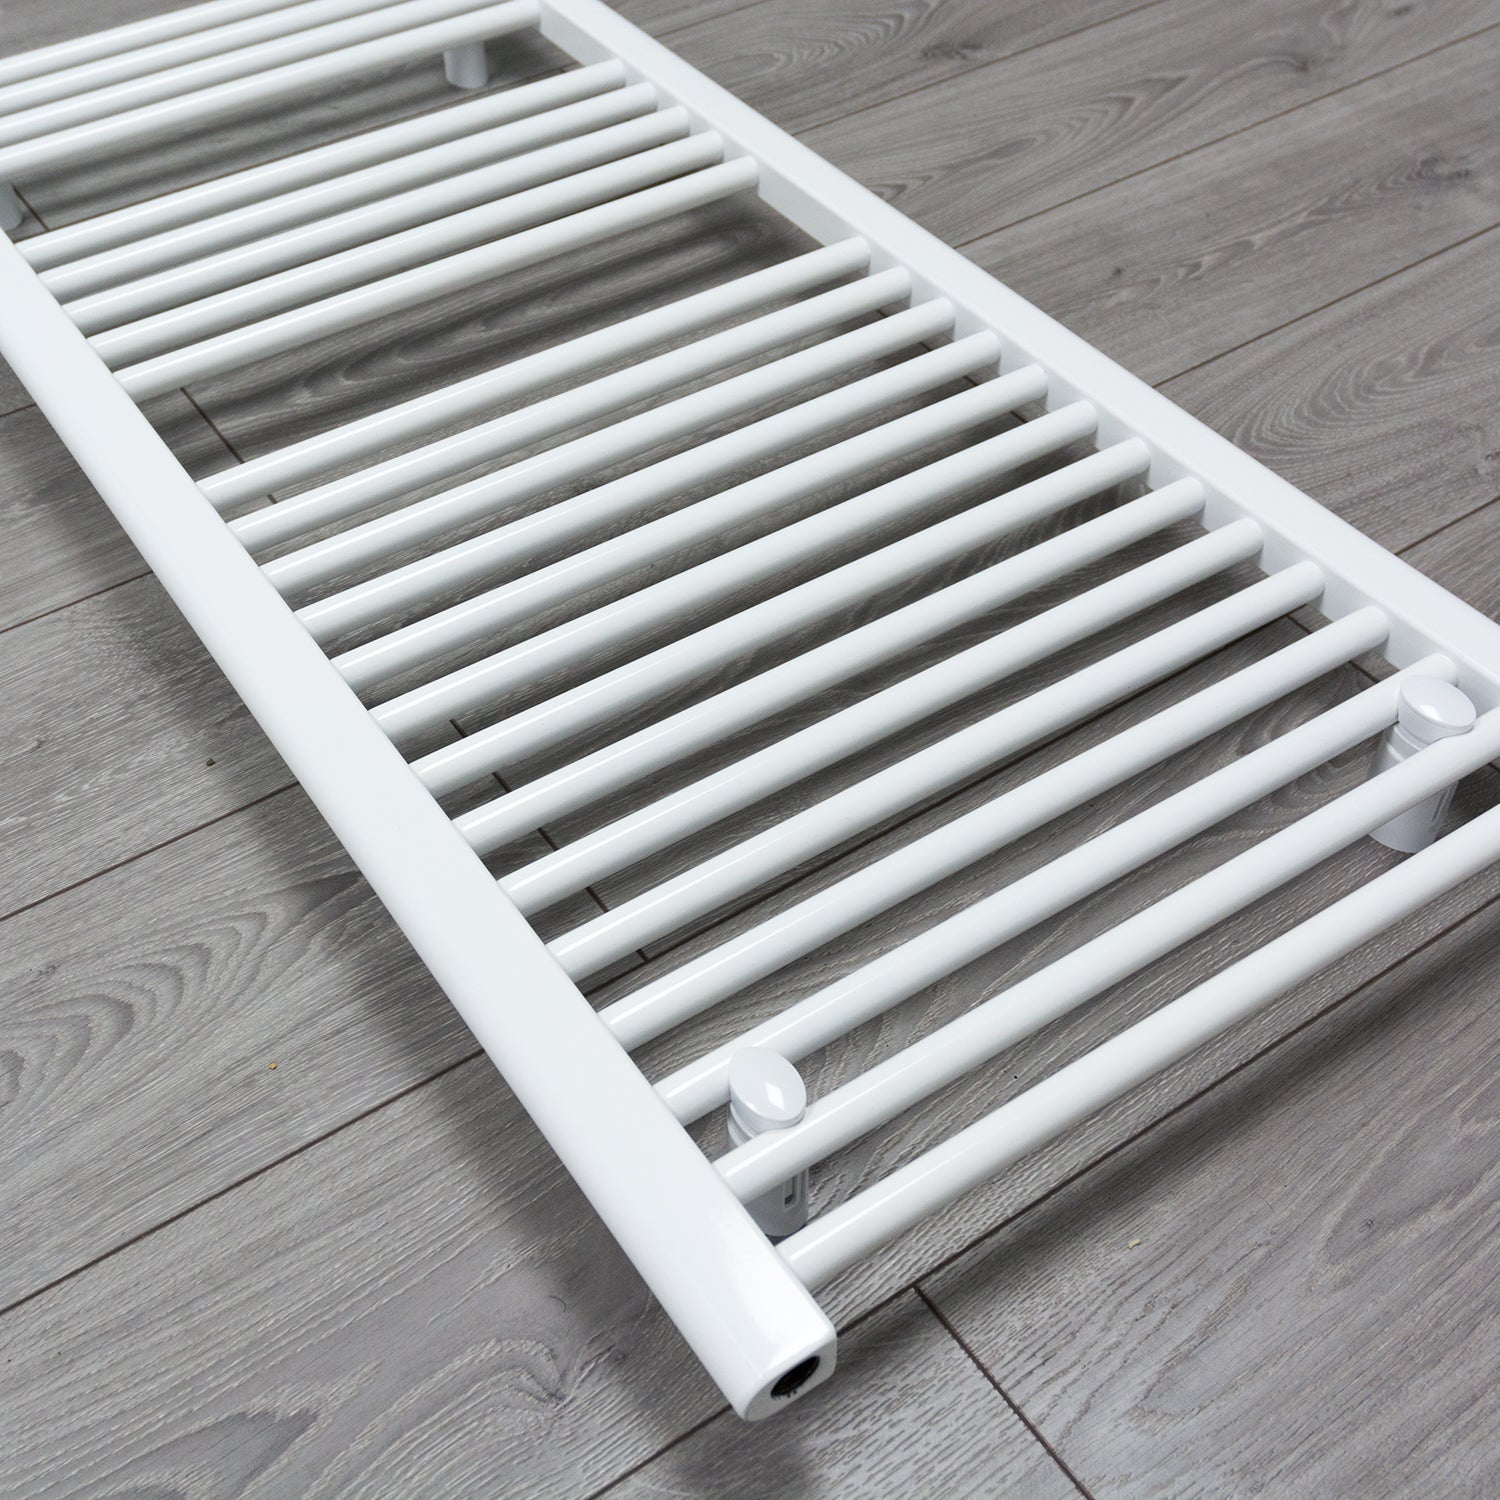 1200 mm High 500 mm Wide Heated Flat Towel Rail Radiator White Central heating